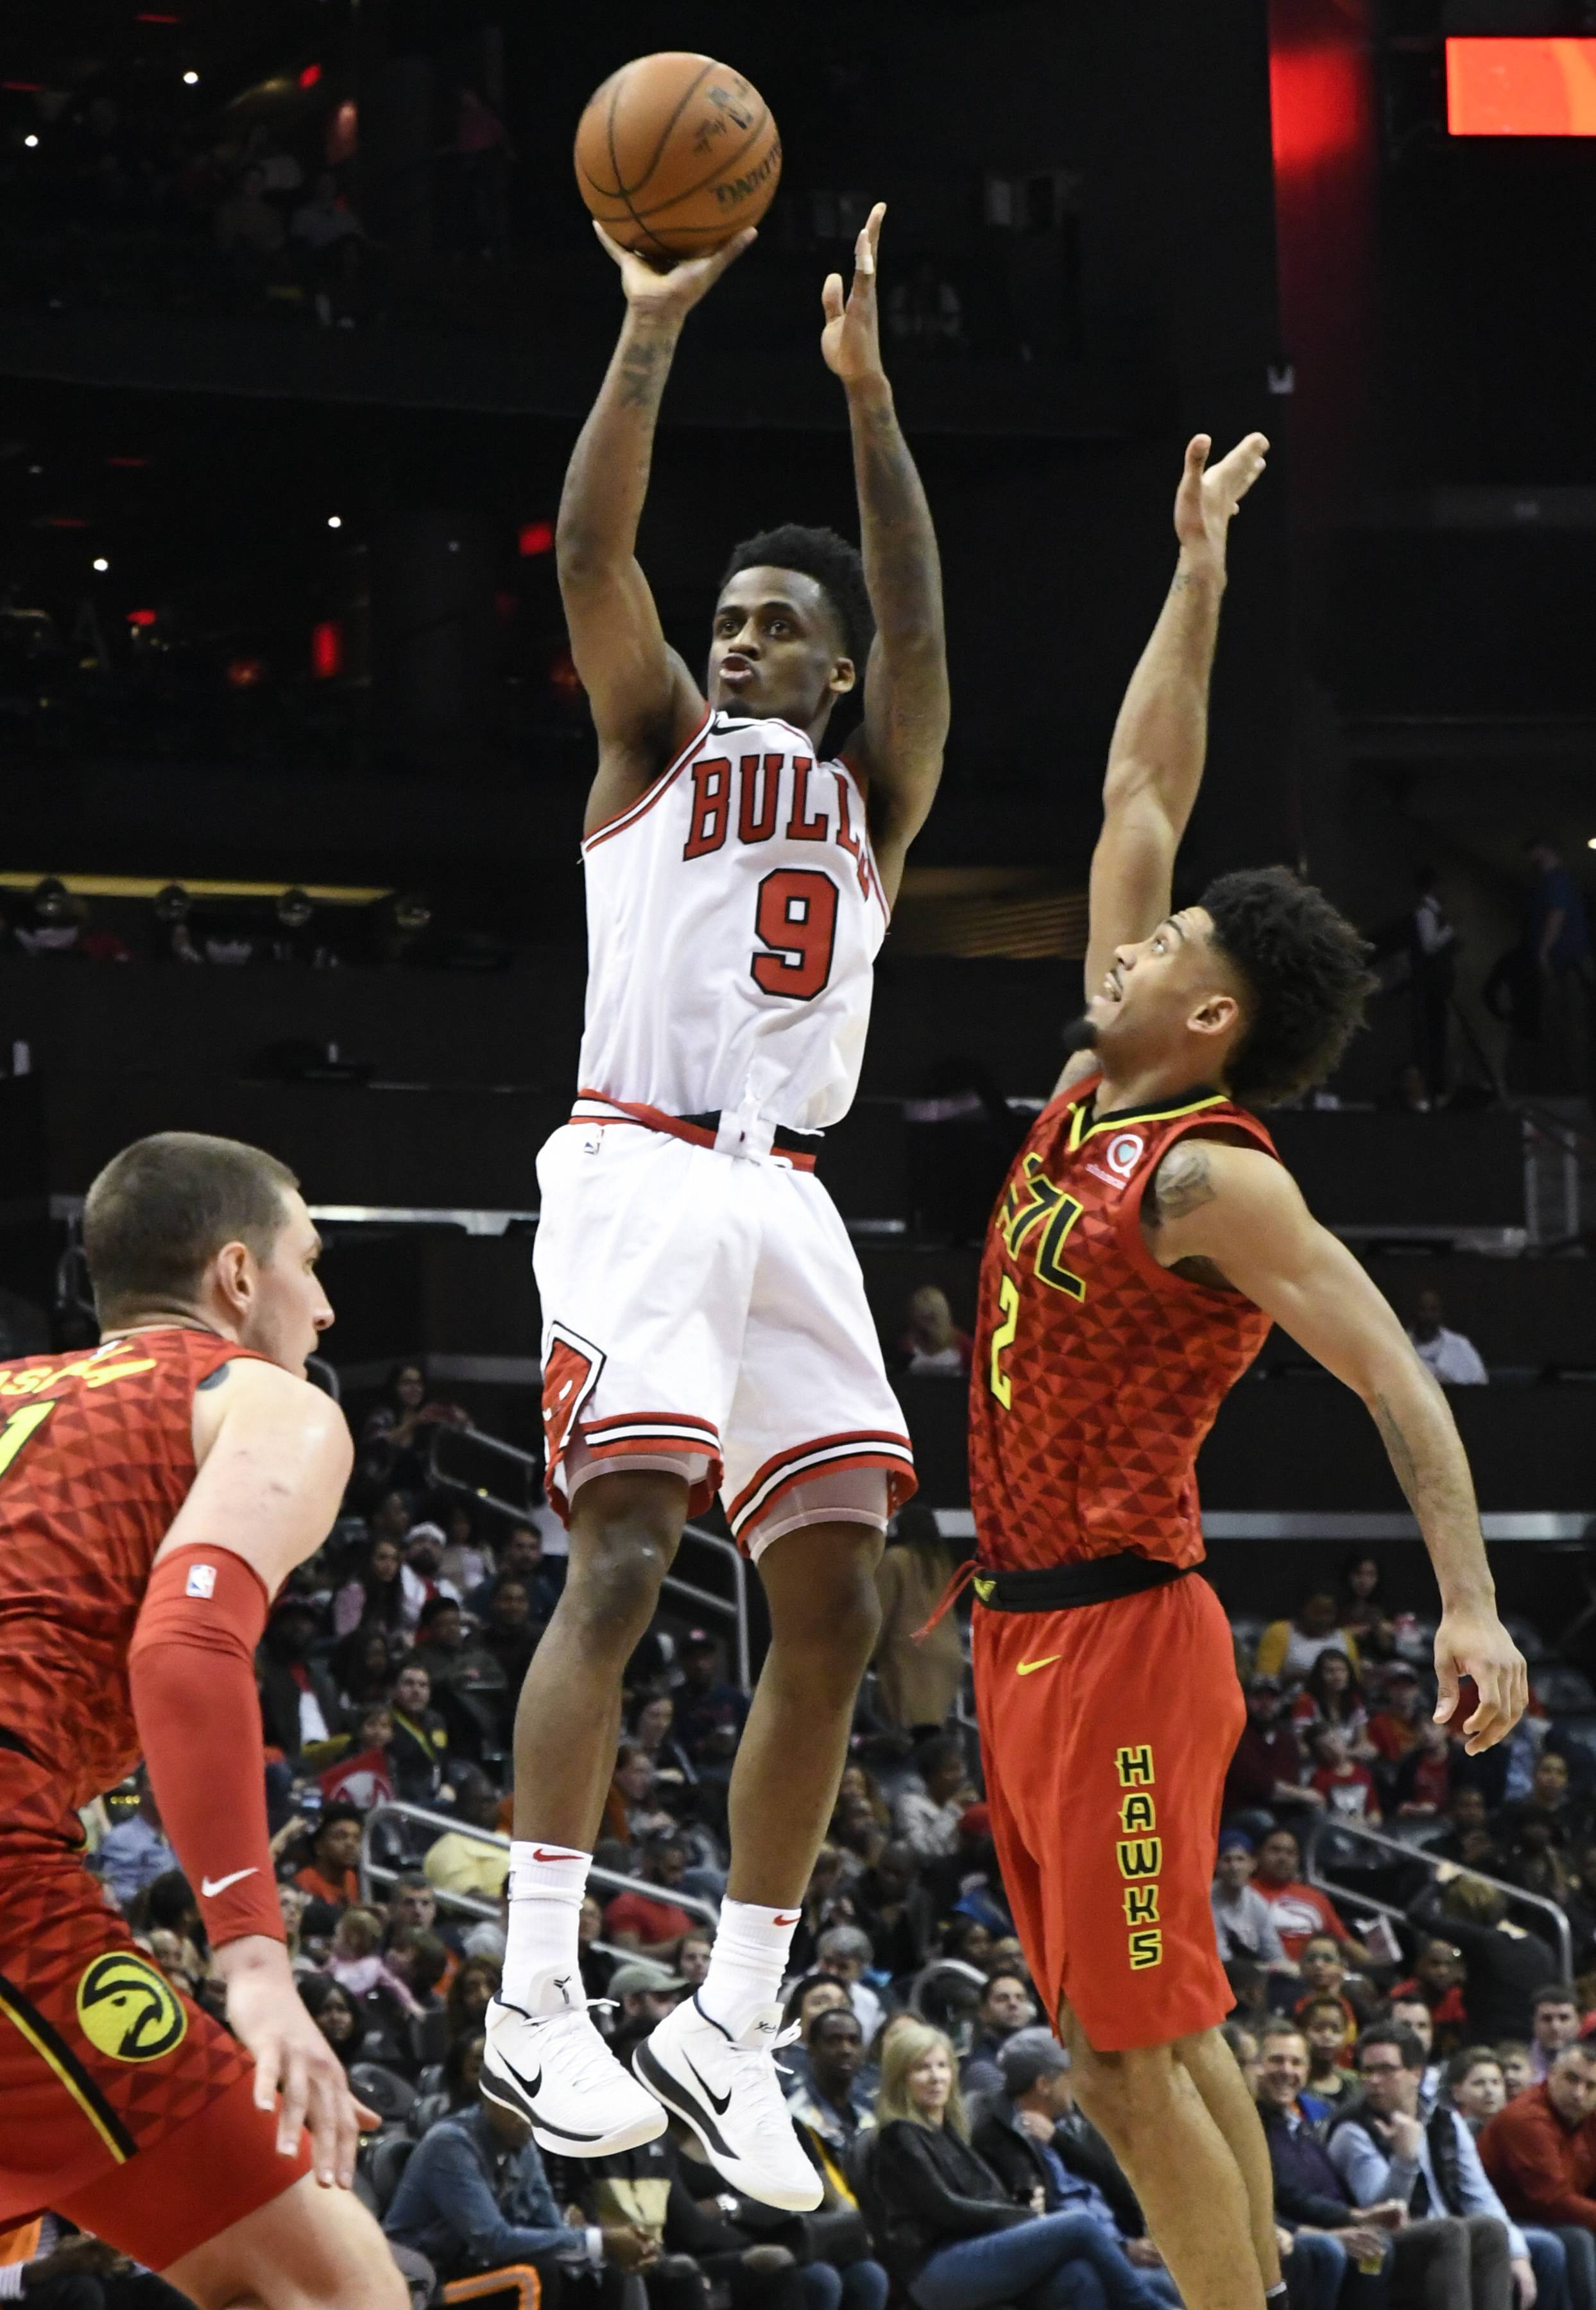 Bulls Blakeney takes home G-League rookie of year award